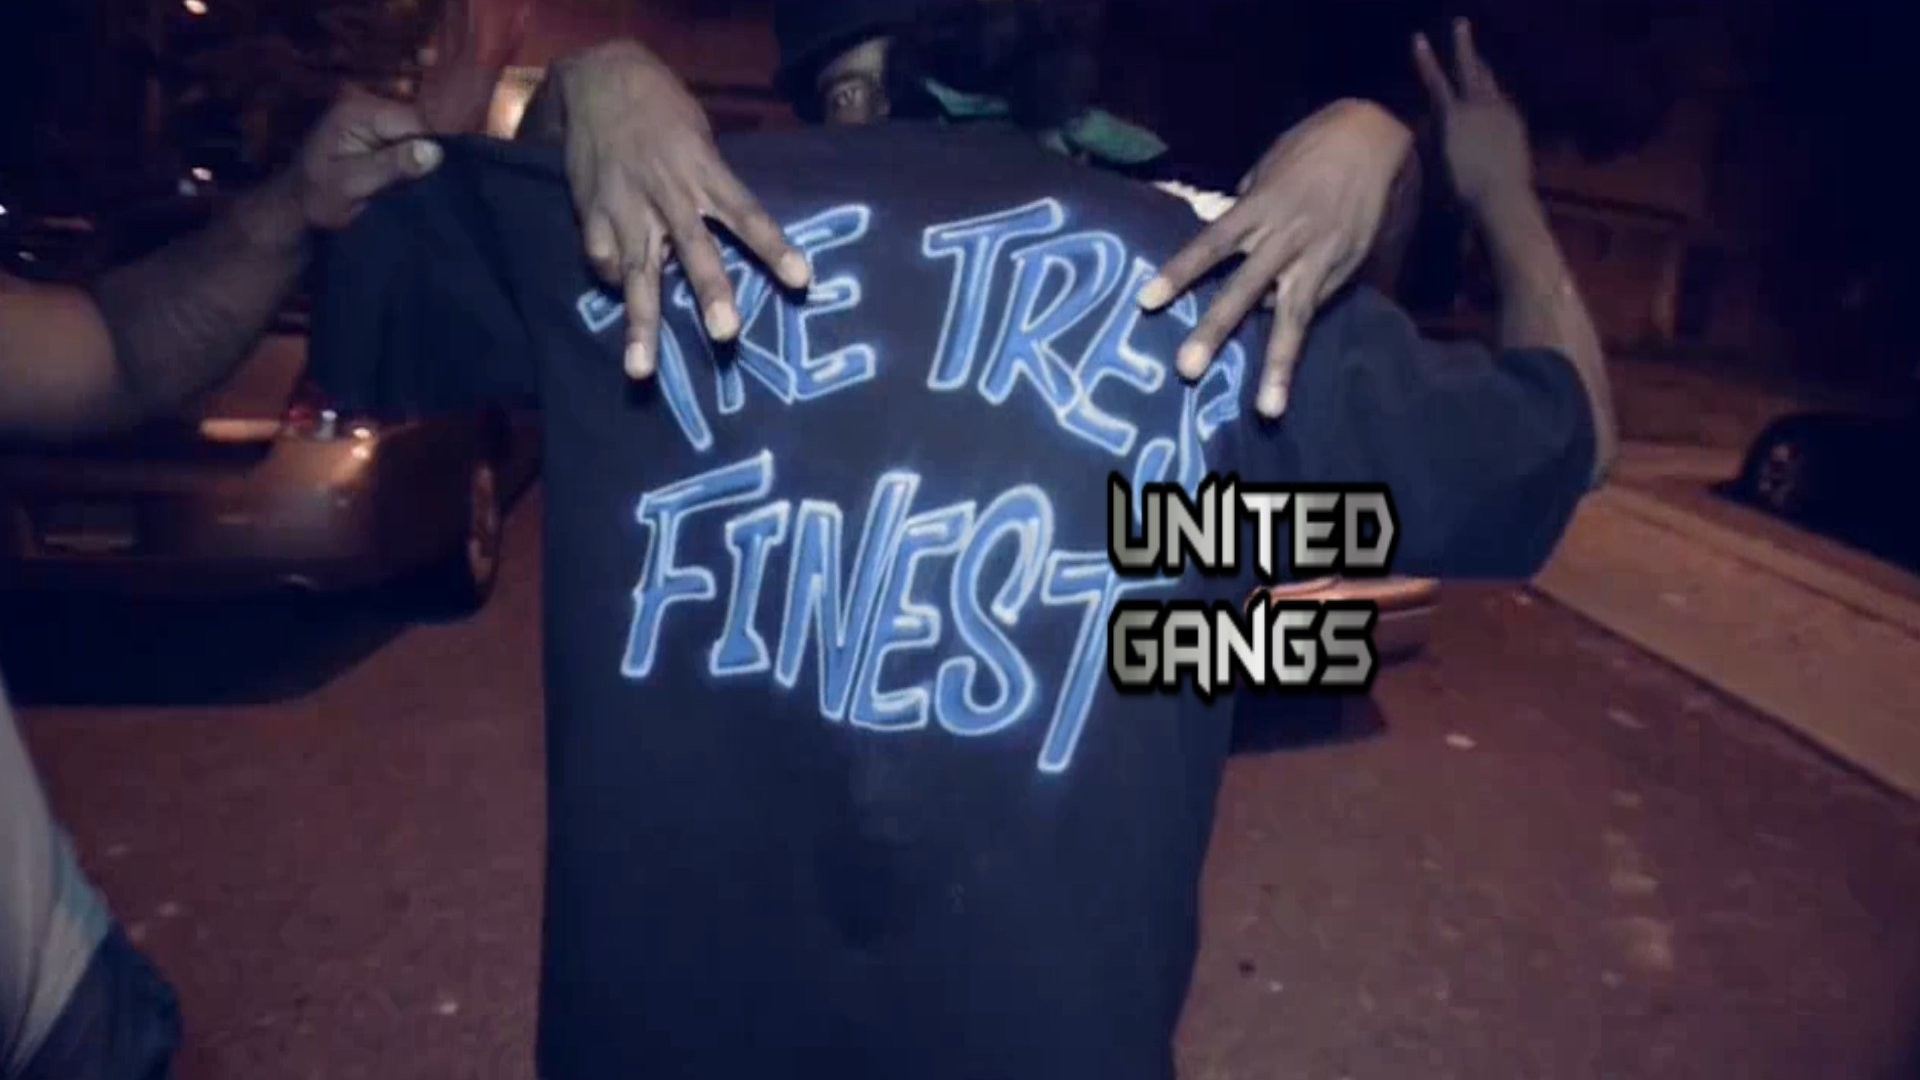 1920x1080 The Rolling 30s Crips also known as Tre-O Crips are an African-American  street gang located in the neighborhood of Northeast Denver, Colorado.